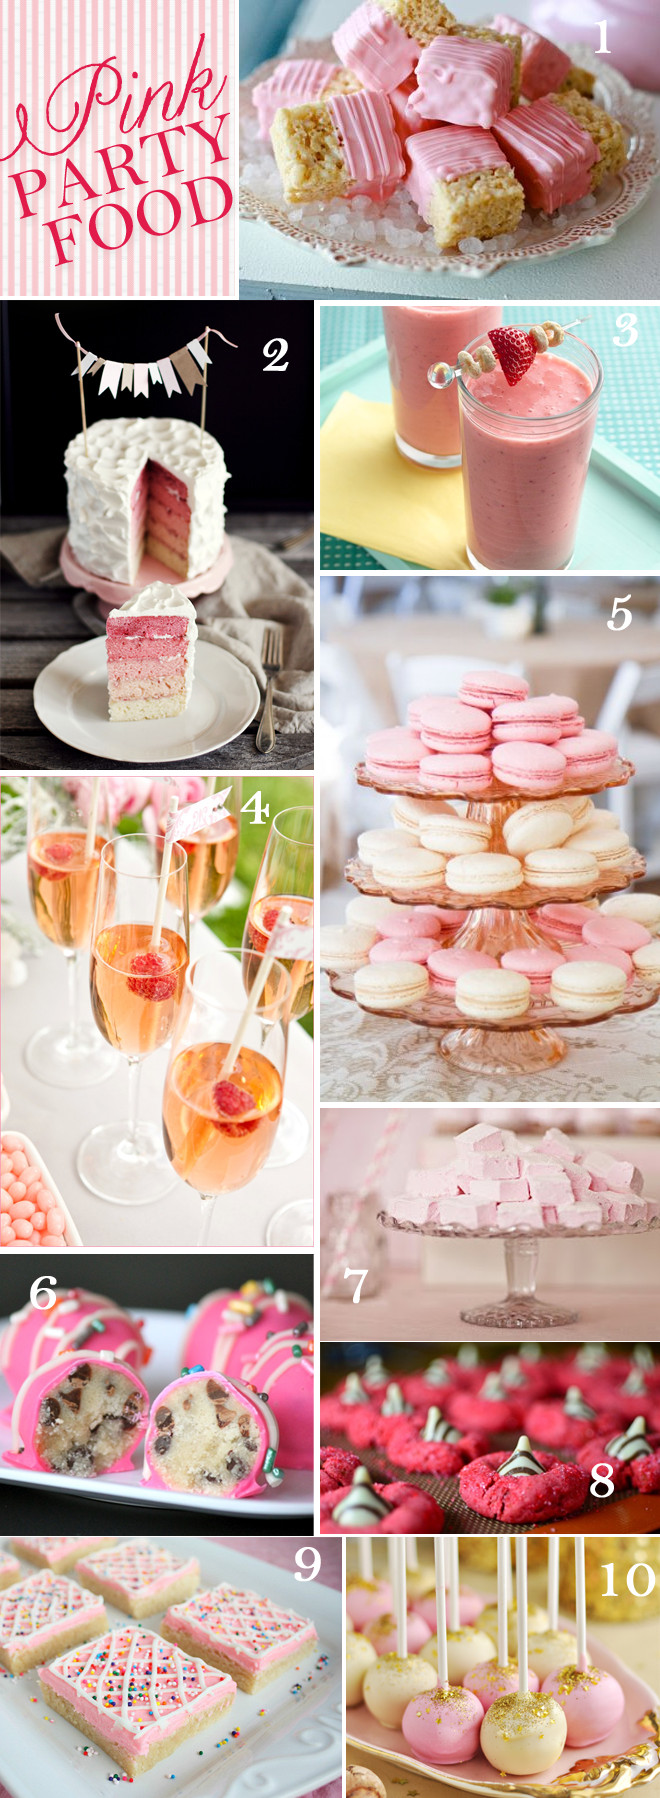 Pink Party Food Ideas  10 Pink Party Foods Drinks I have a pinkalicous